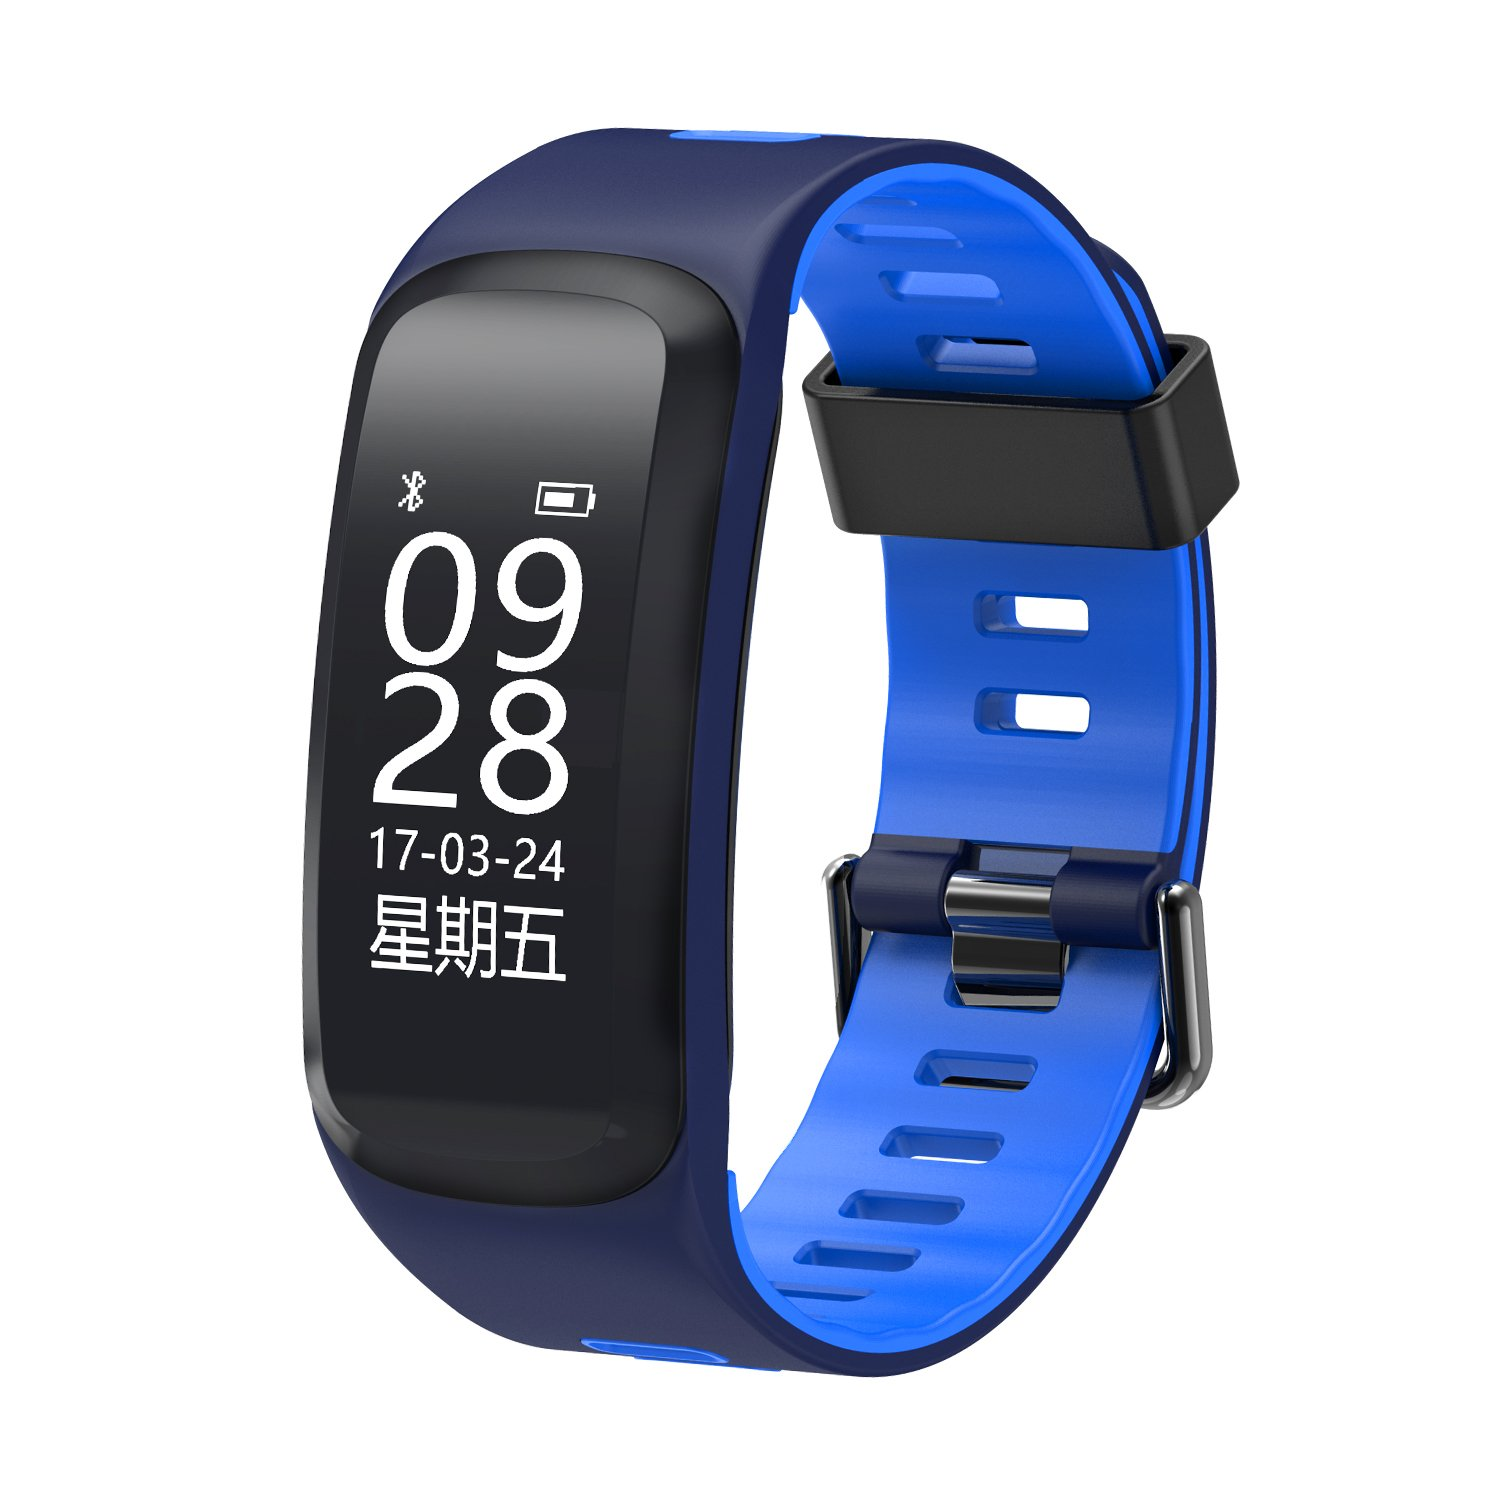 Vacio Bluetooth 4.0 Heart Rate Monitor Watch Walkingスリープワイヤレススマートリストバンド歩数計防水スポーツブレスレットfor iPone 7 /8プラス、Ipone X、iOSシステム、SAMSUNG s8 /s9 and Android ブルー VCCA-PA-CZJ-F4BE  ブルー B07C52YGYF